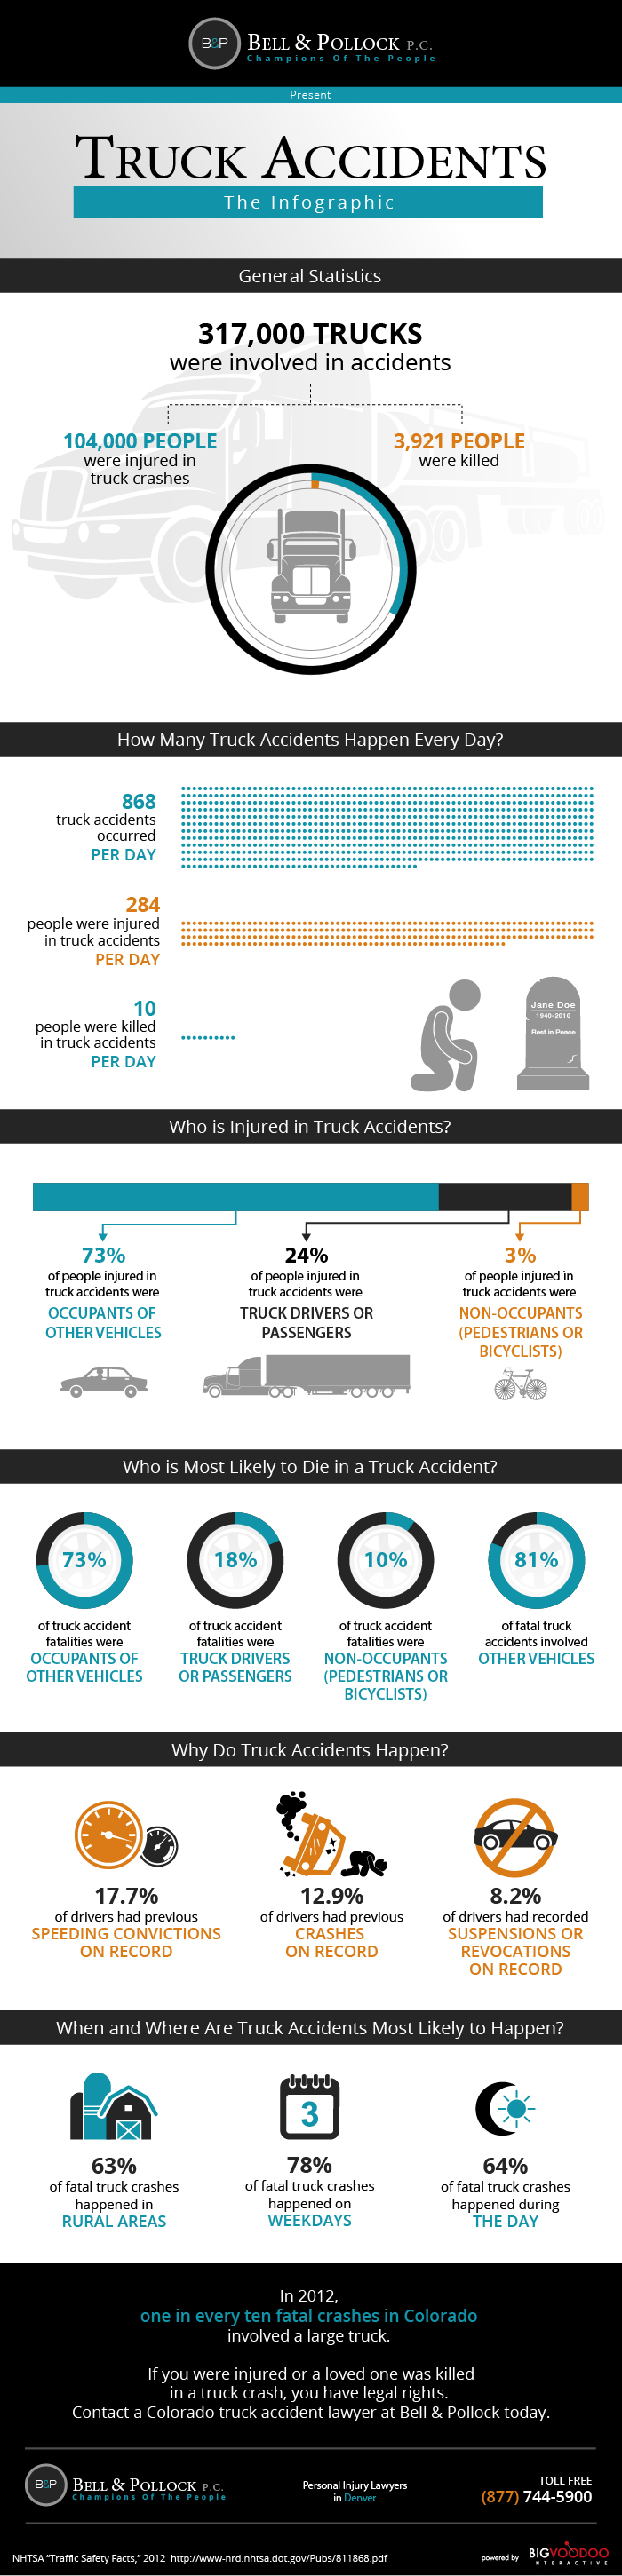 Bell-Pollock-Truck-Accident-Lawyer-Infographic2